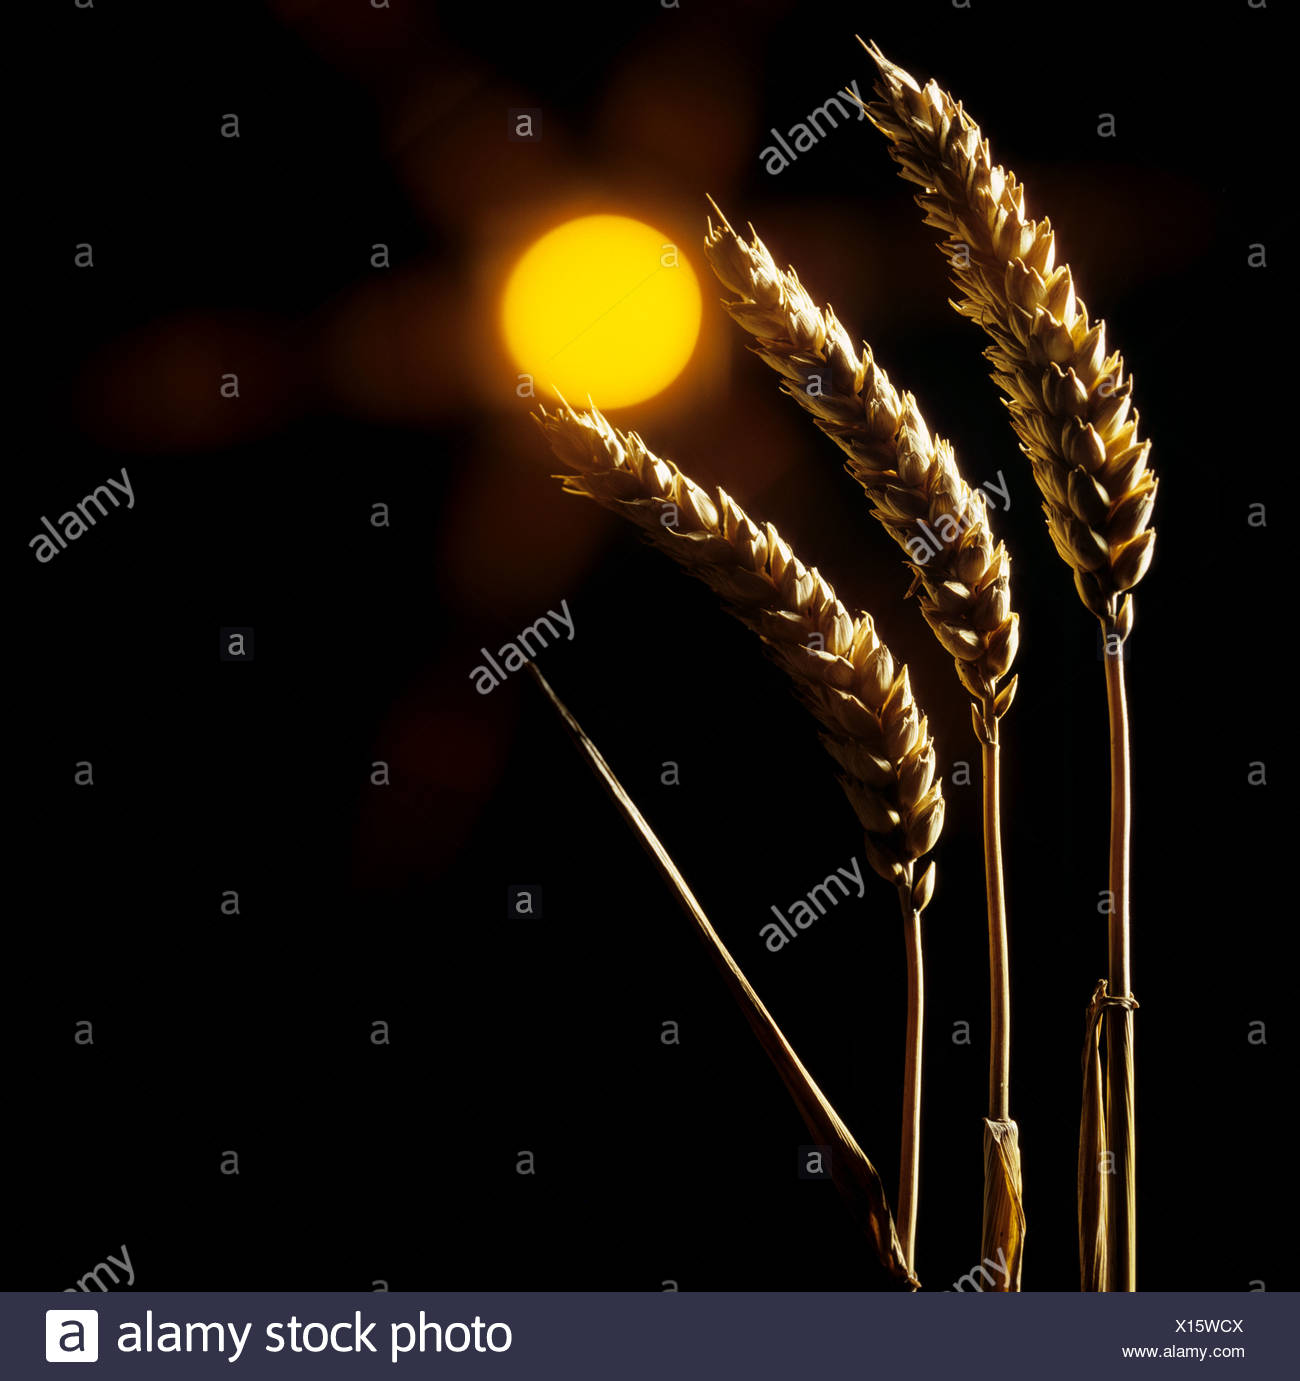 Stylised ears of wheat curved towards a sun with starburst black & orange - Stock Image